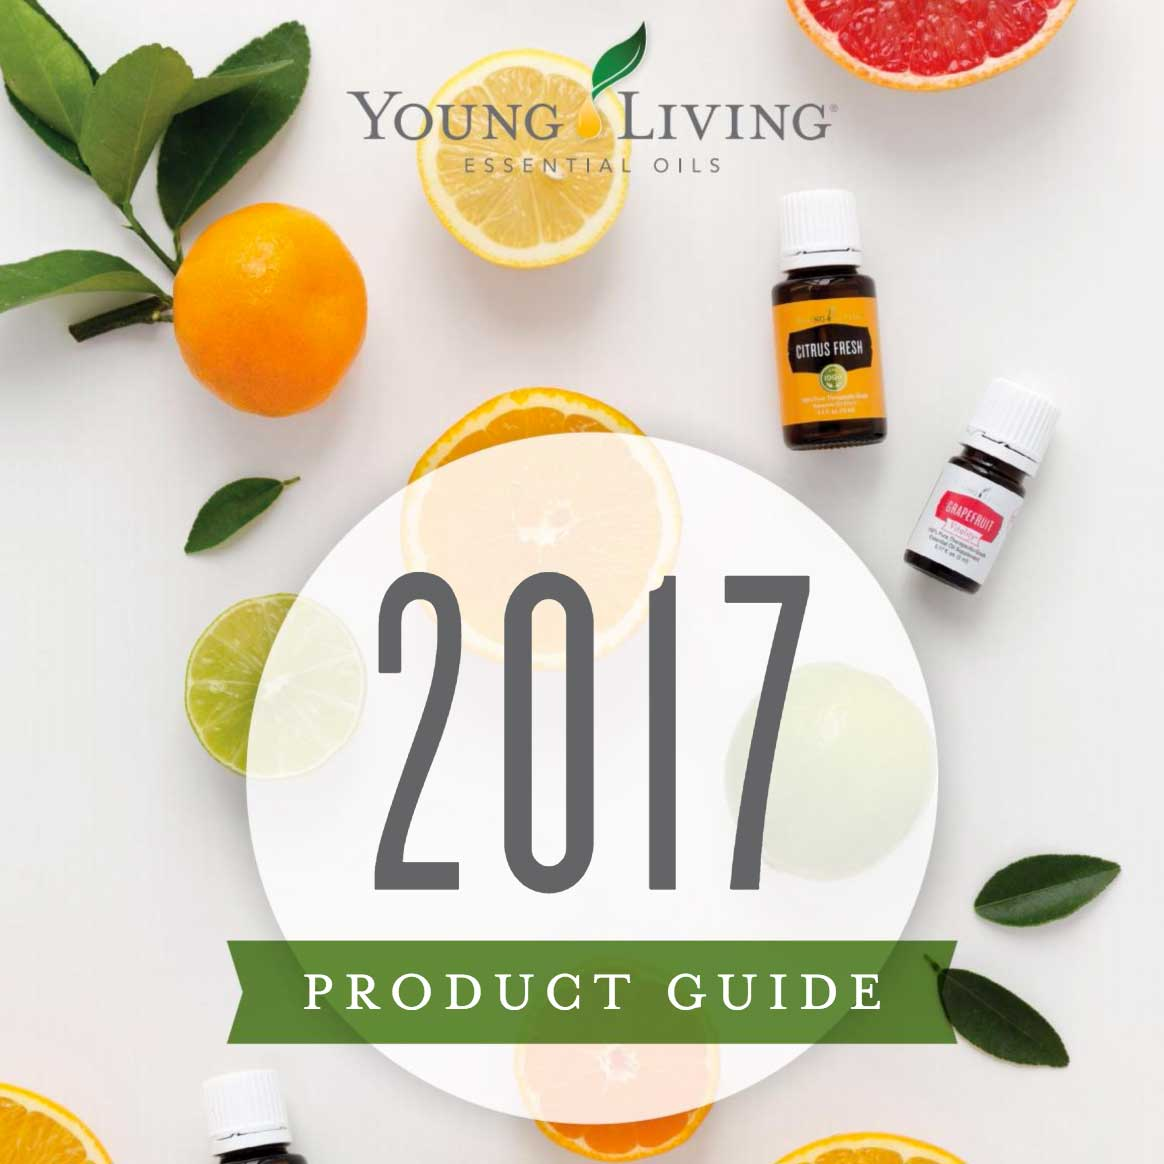 2017 Young Living Product Guide